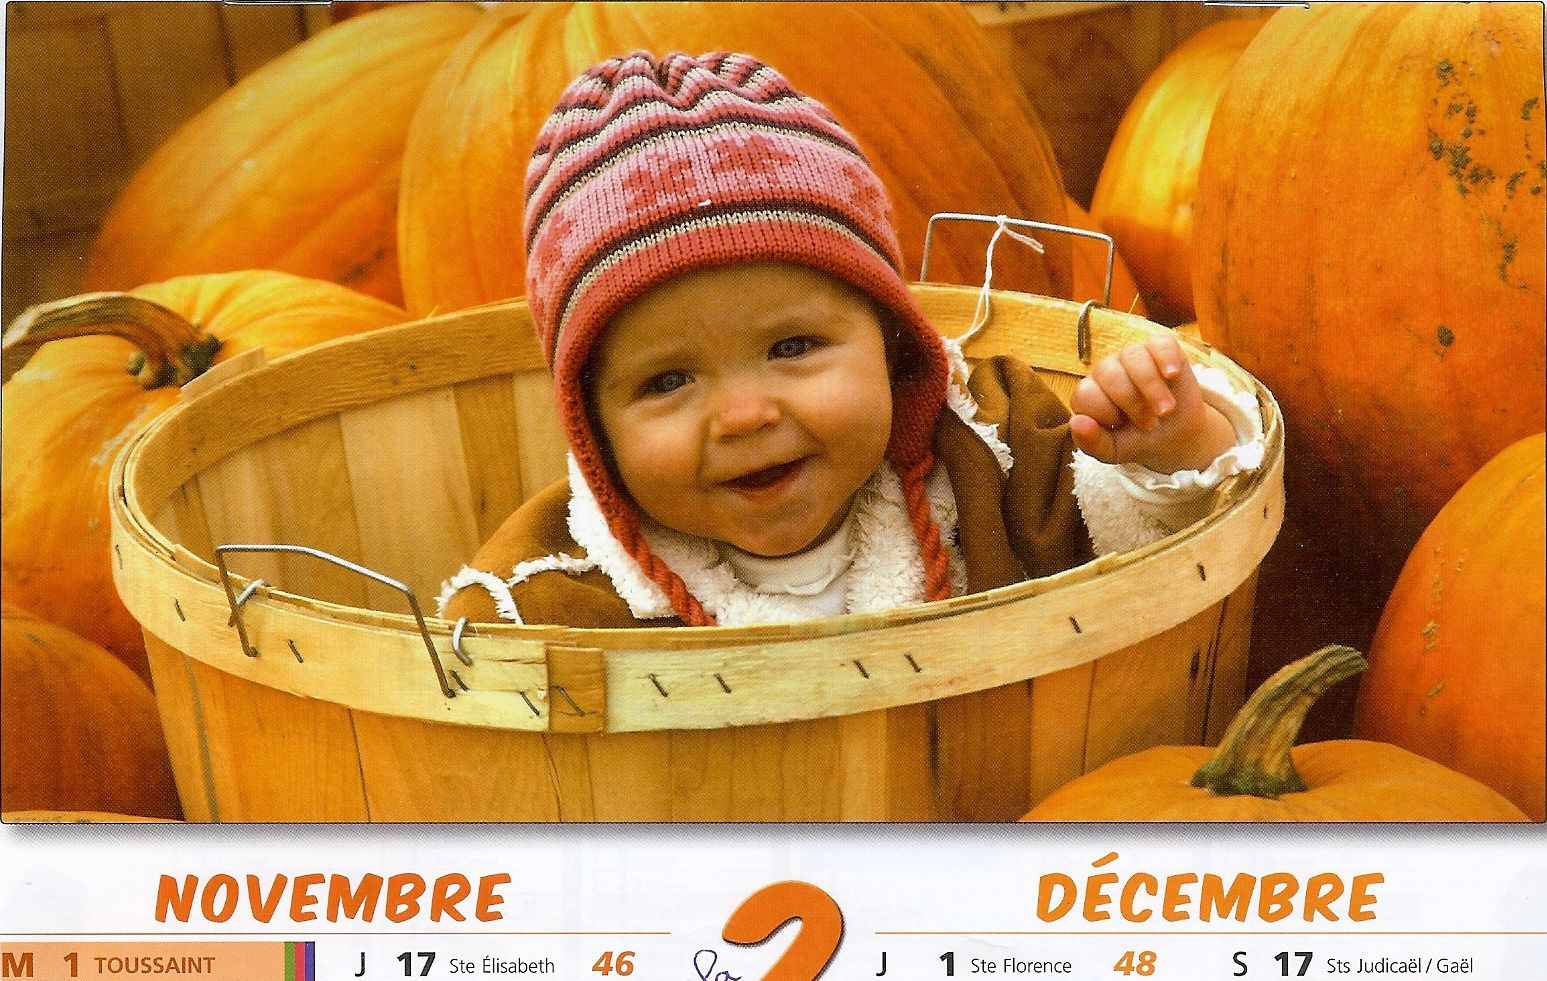 couleur orange sur calendrier